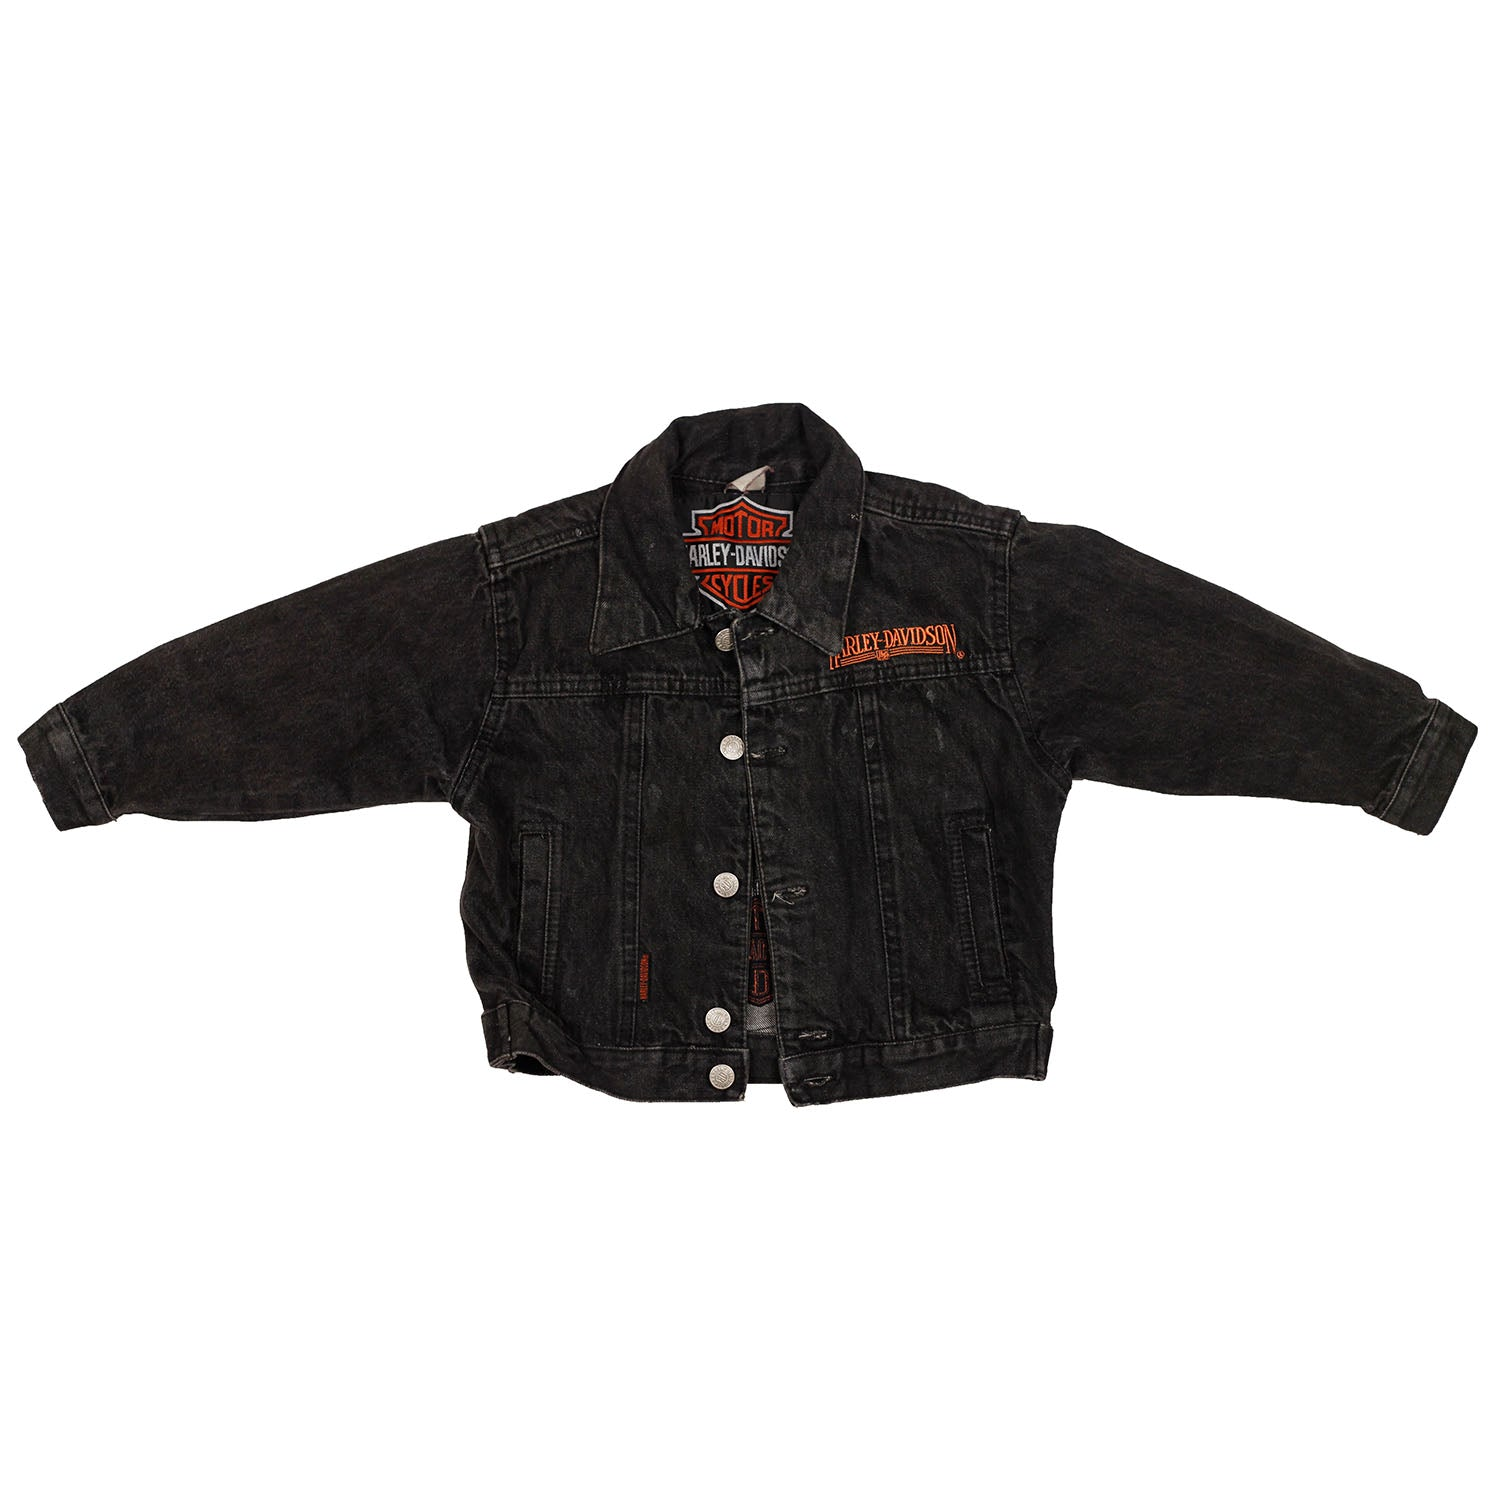 Harley Davidson Denim Jacket size 5